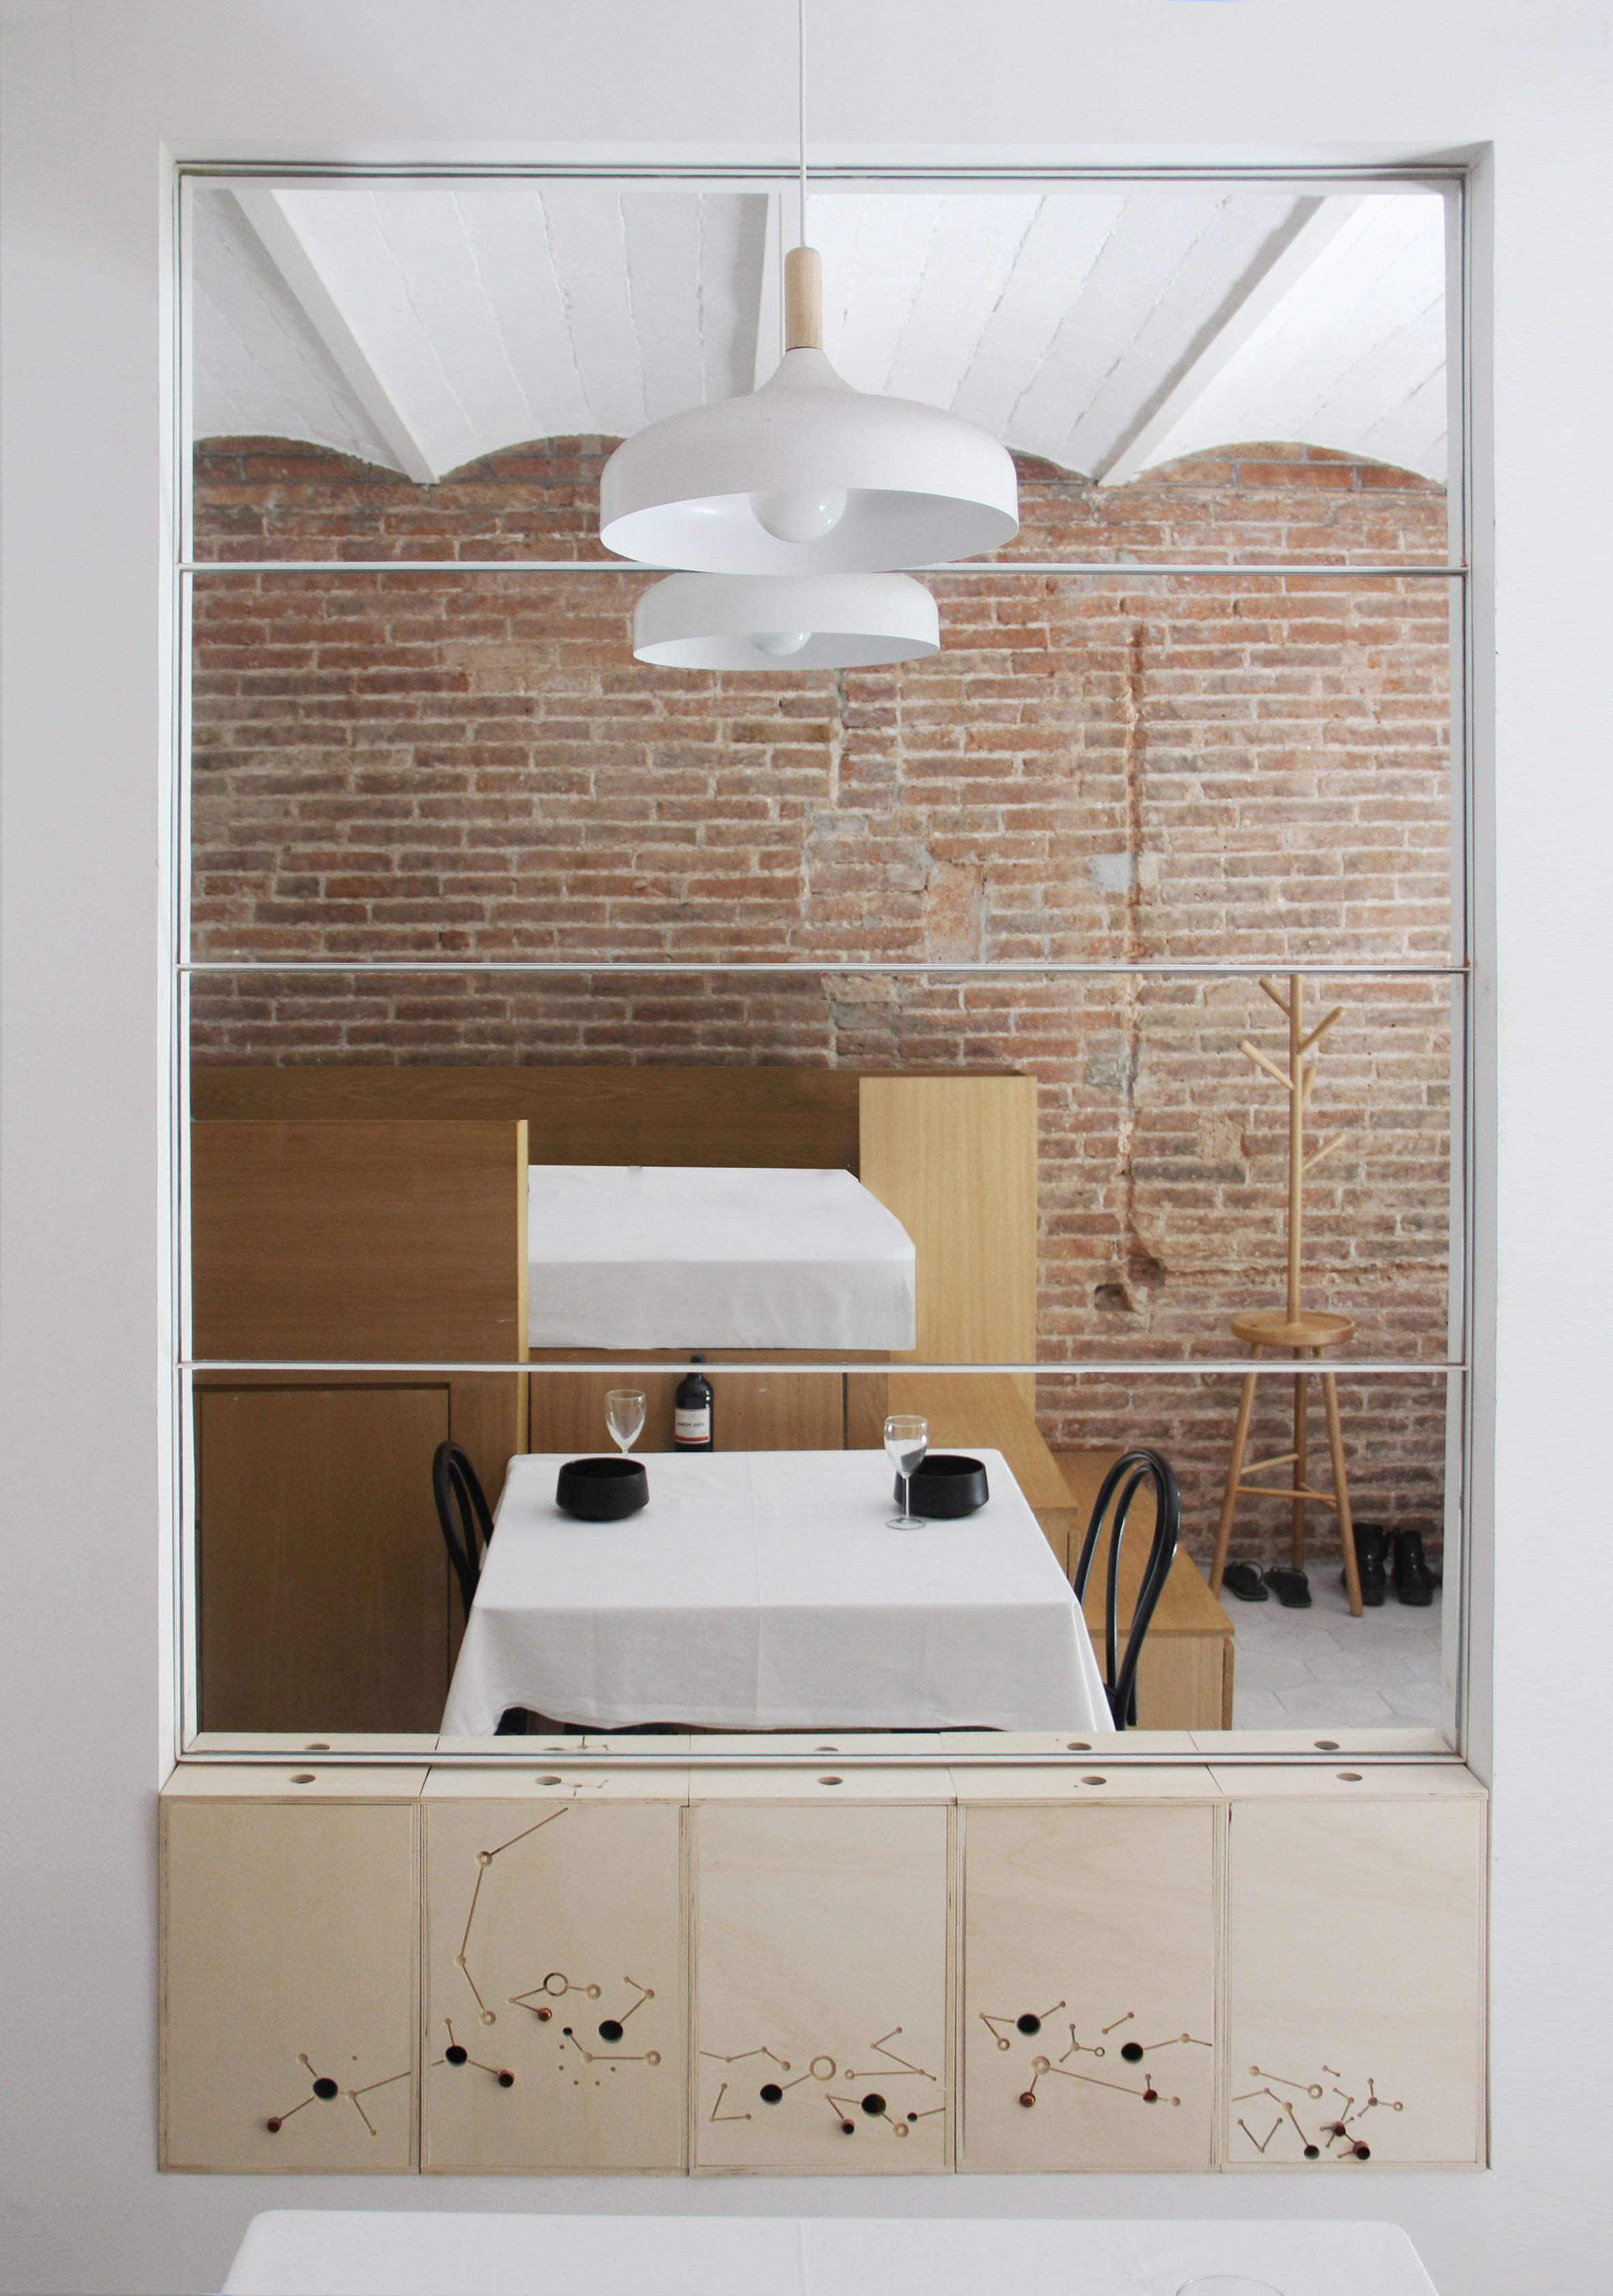 5. A 25 square metre apartment in Barcelona by Naimi Architecture - A 25-square-metre apartment in Barcelona by Naimi Architecture